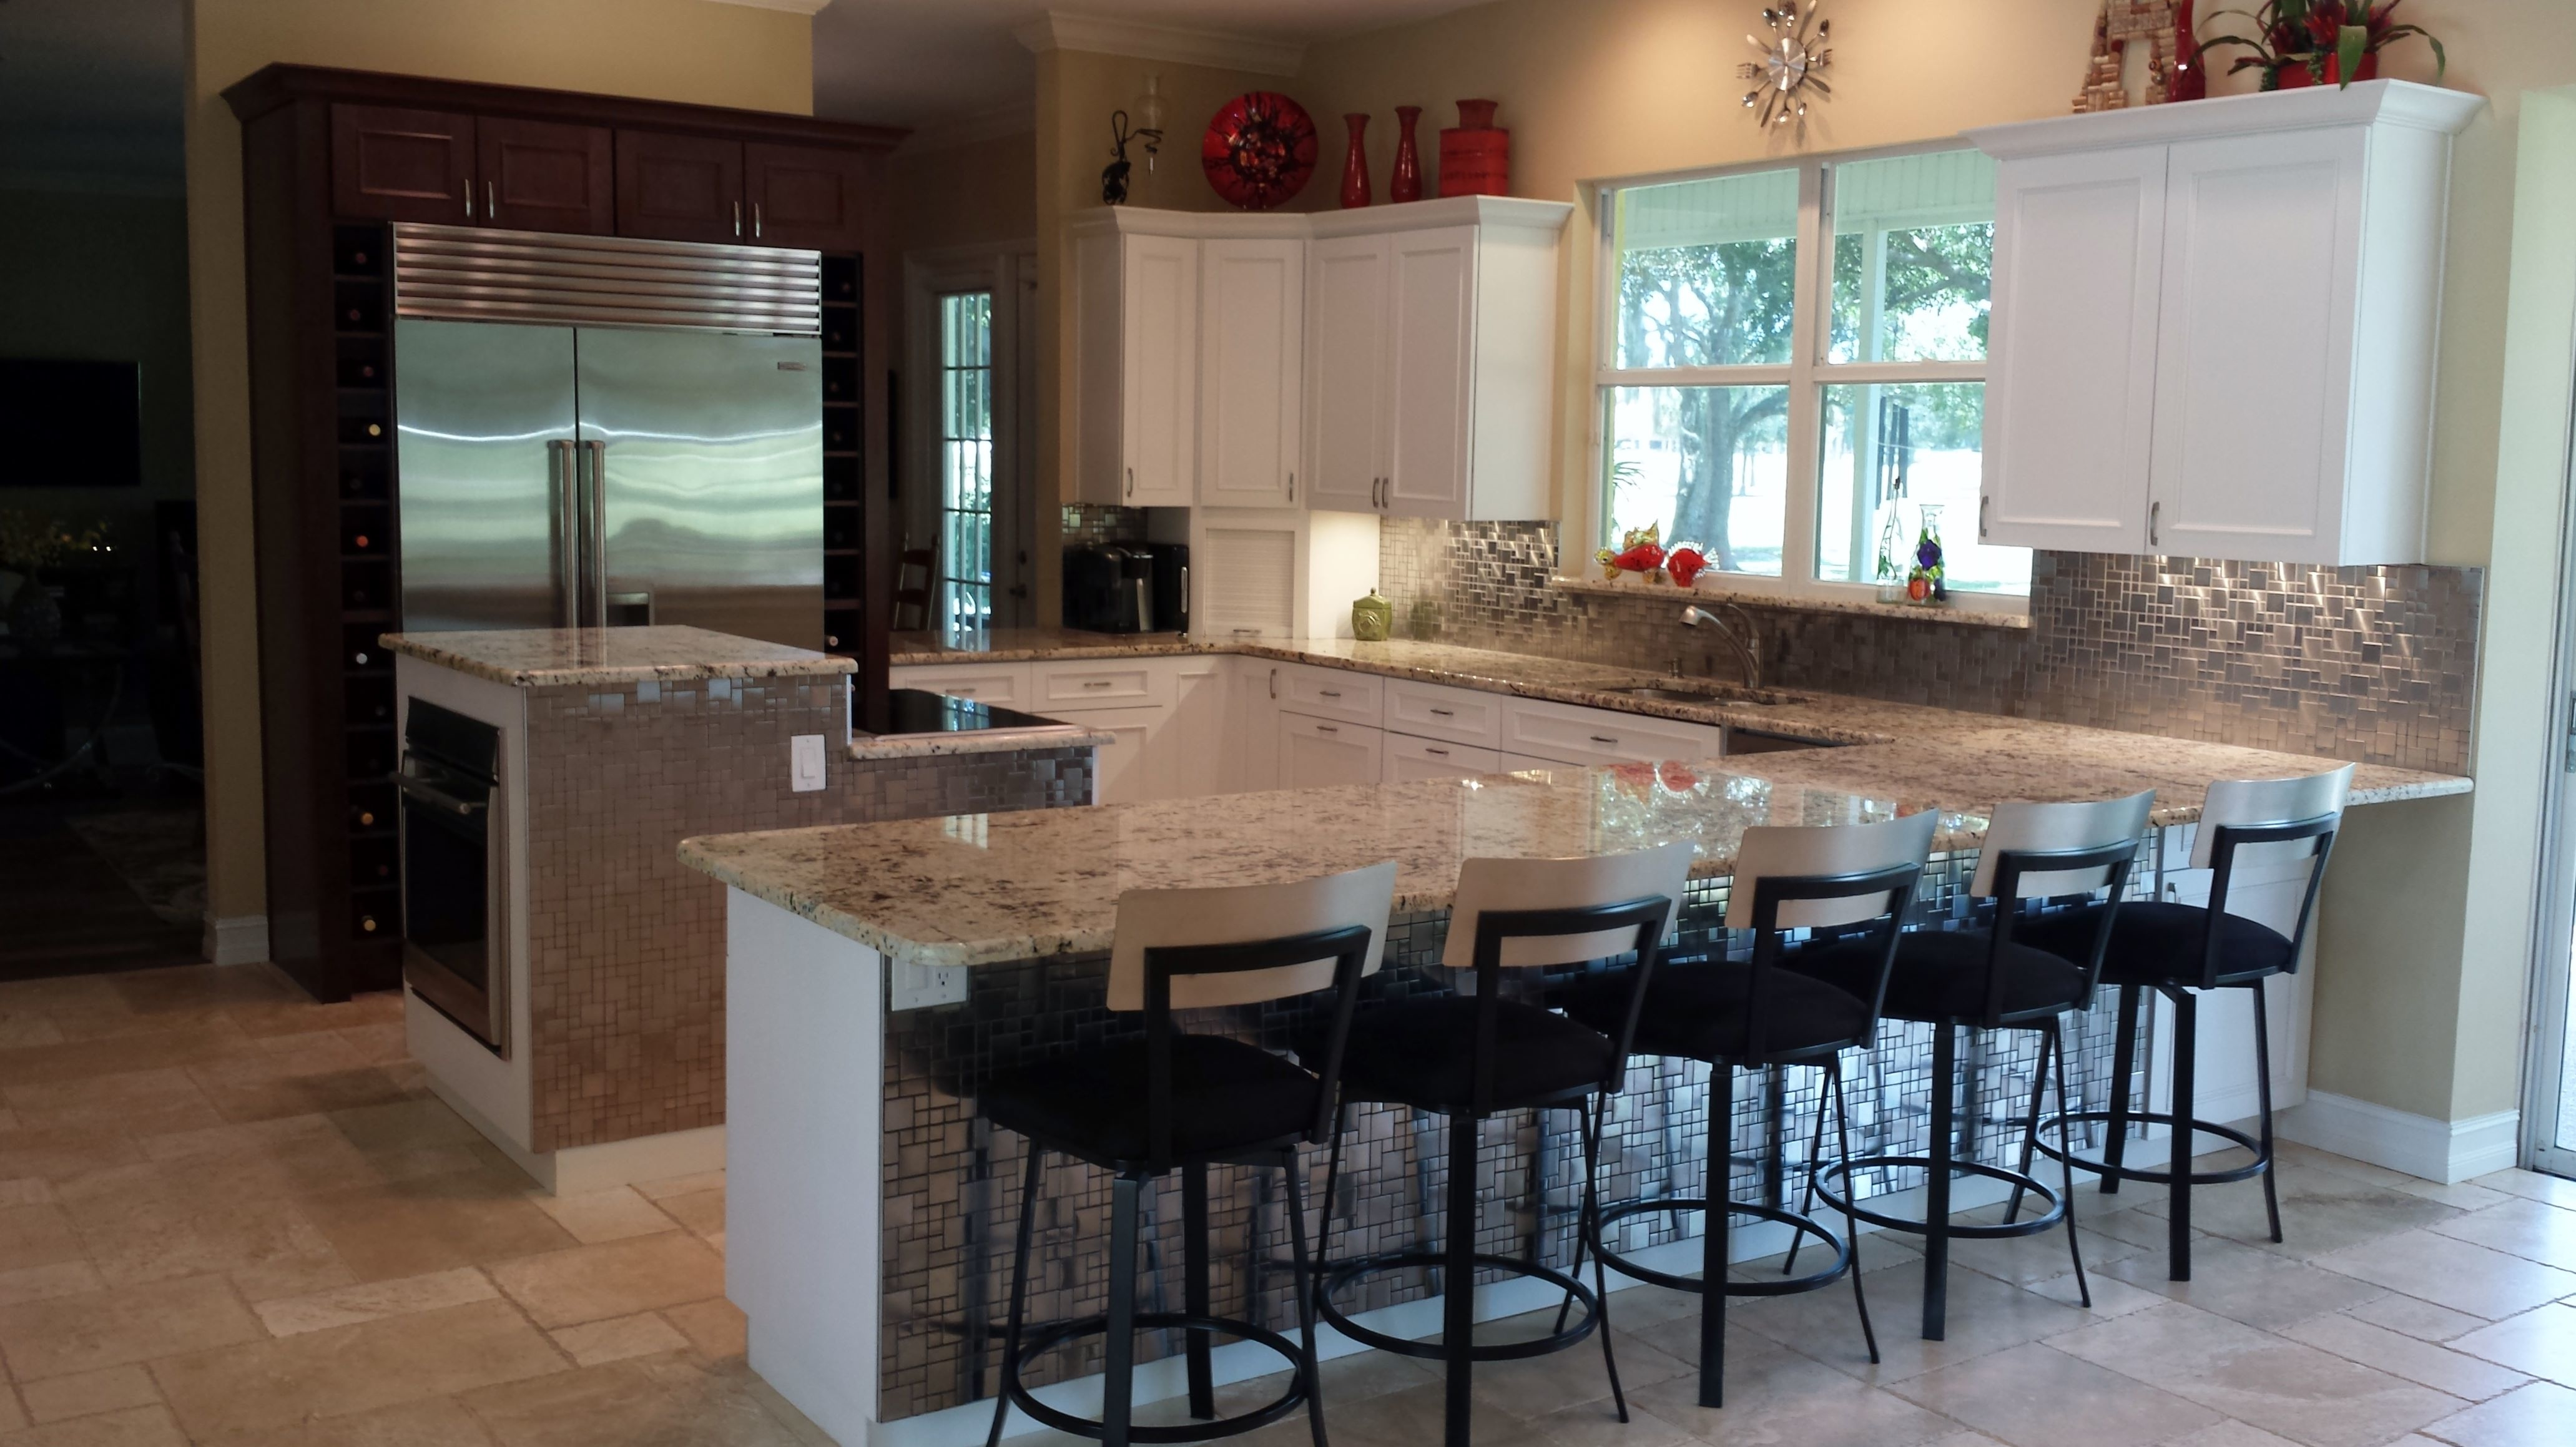 Re A Door Kitchen Cabinets Refacing 2502 West Carmen Street 1 Tampa Fl Resurfacing Refinishing Mapquest